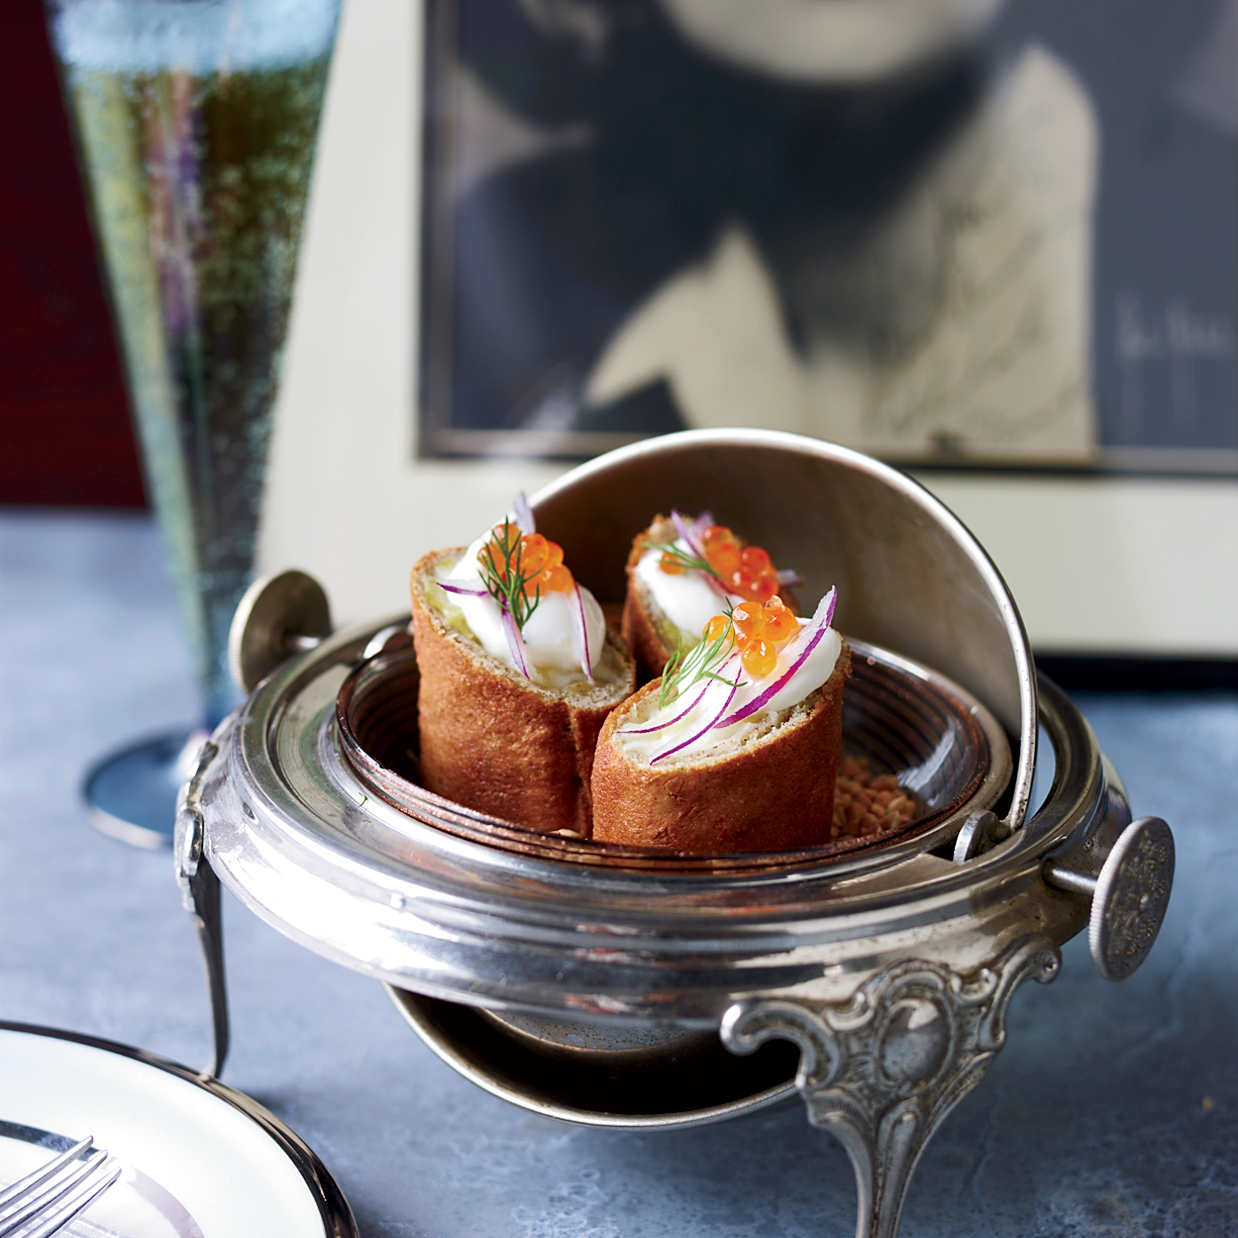 images-sys-201112-r-buckwheat-potato-knishes-with-caviar.jpg